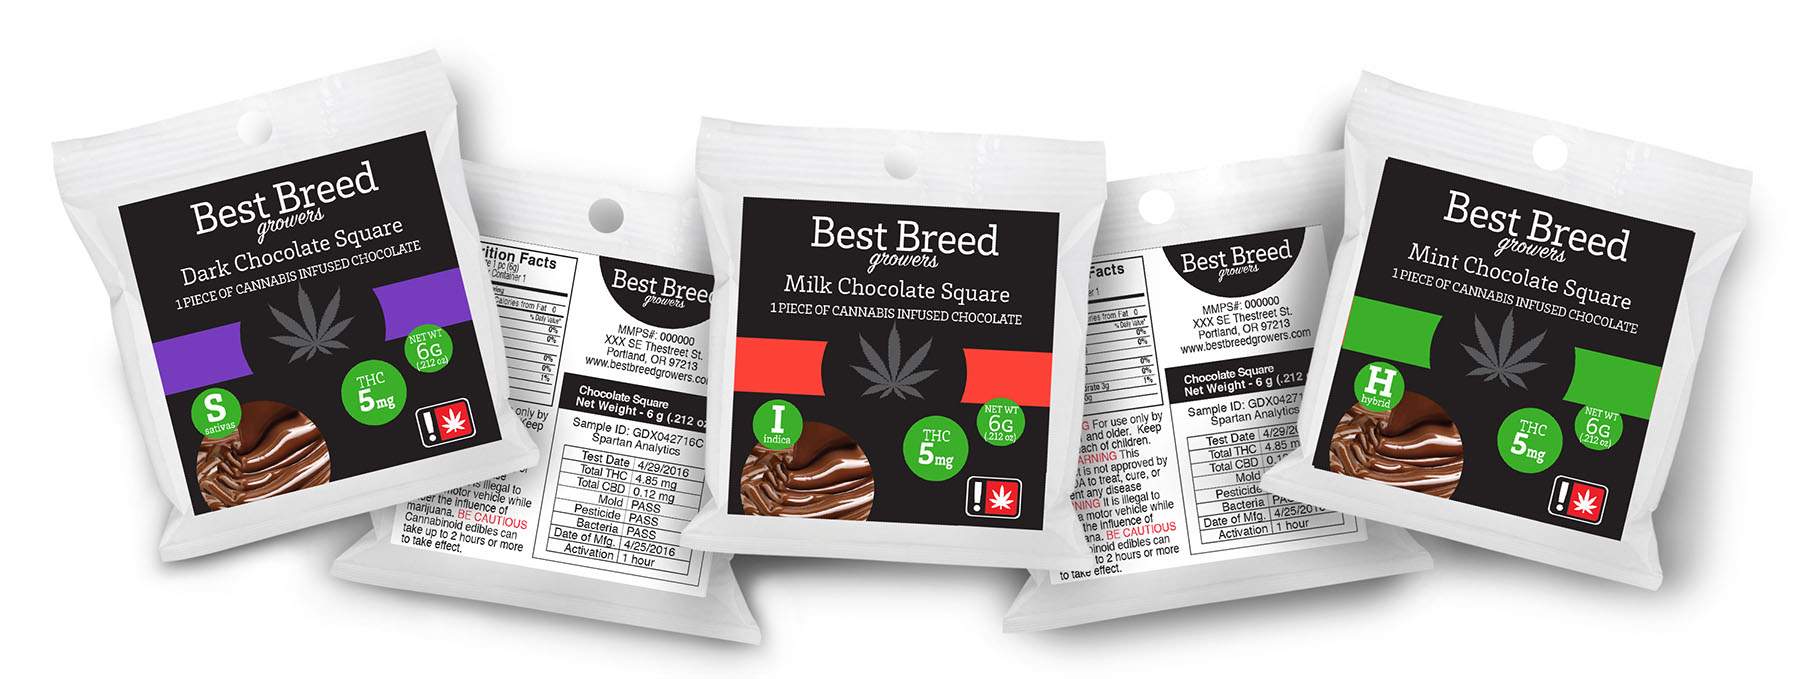 Package Design and Labeling Compliance